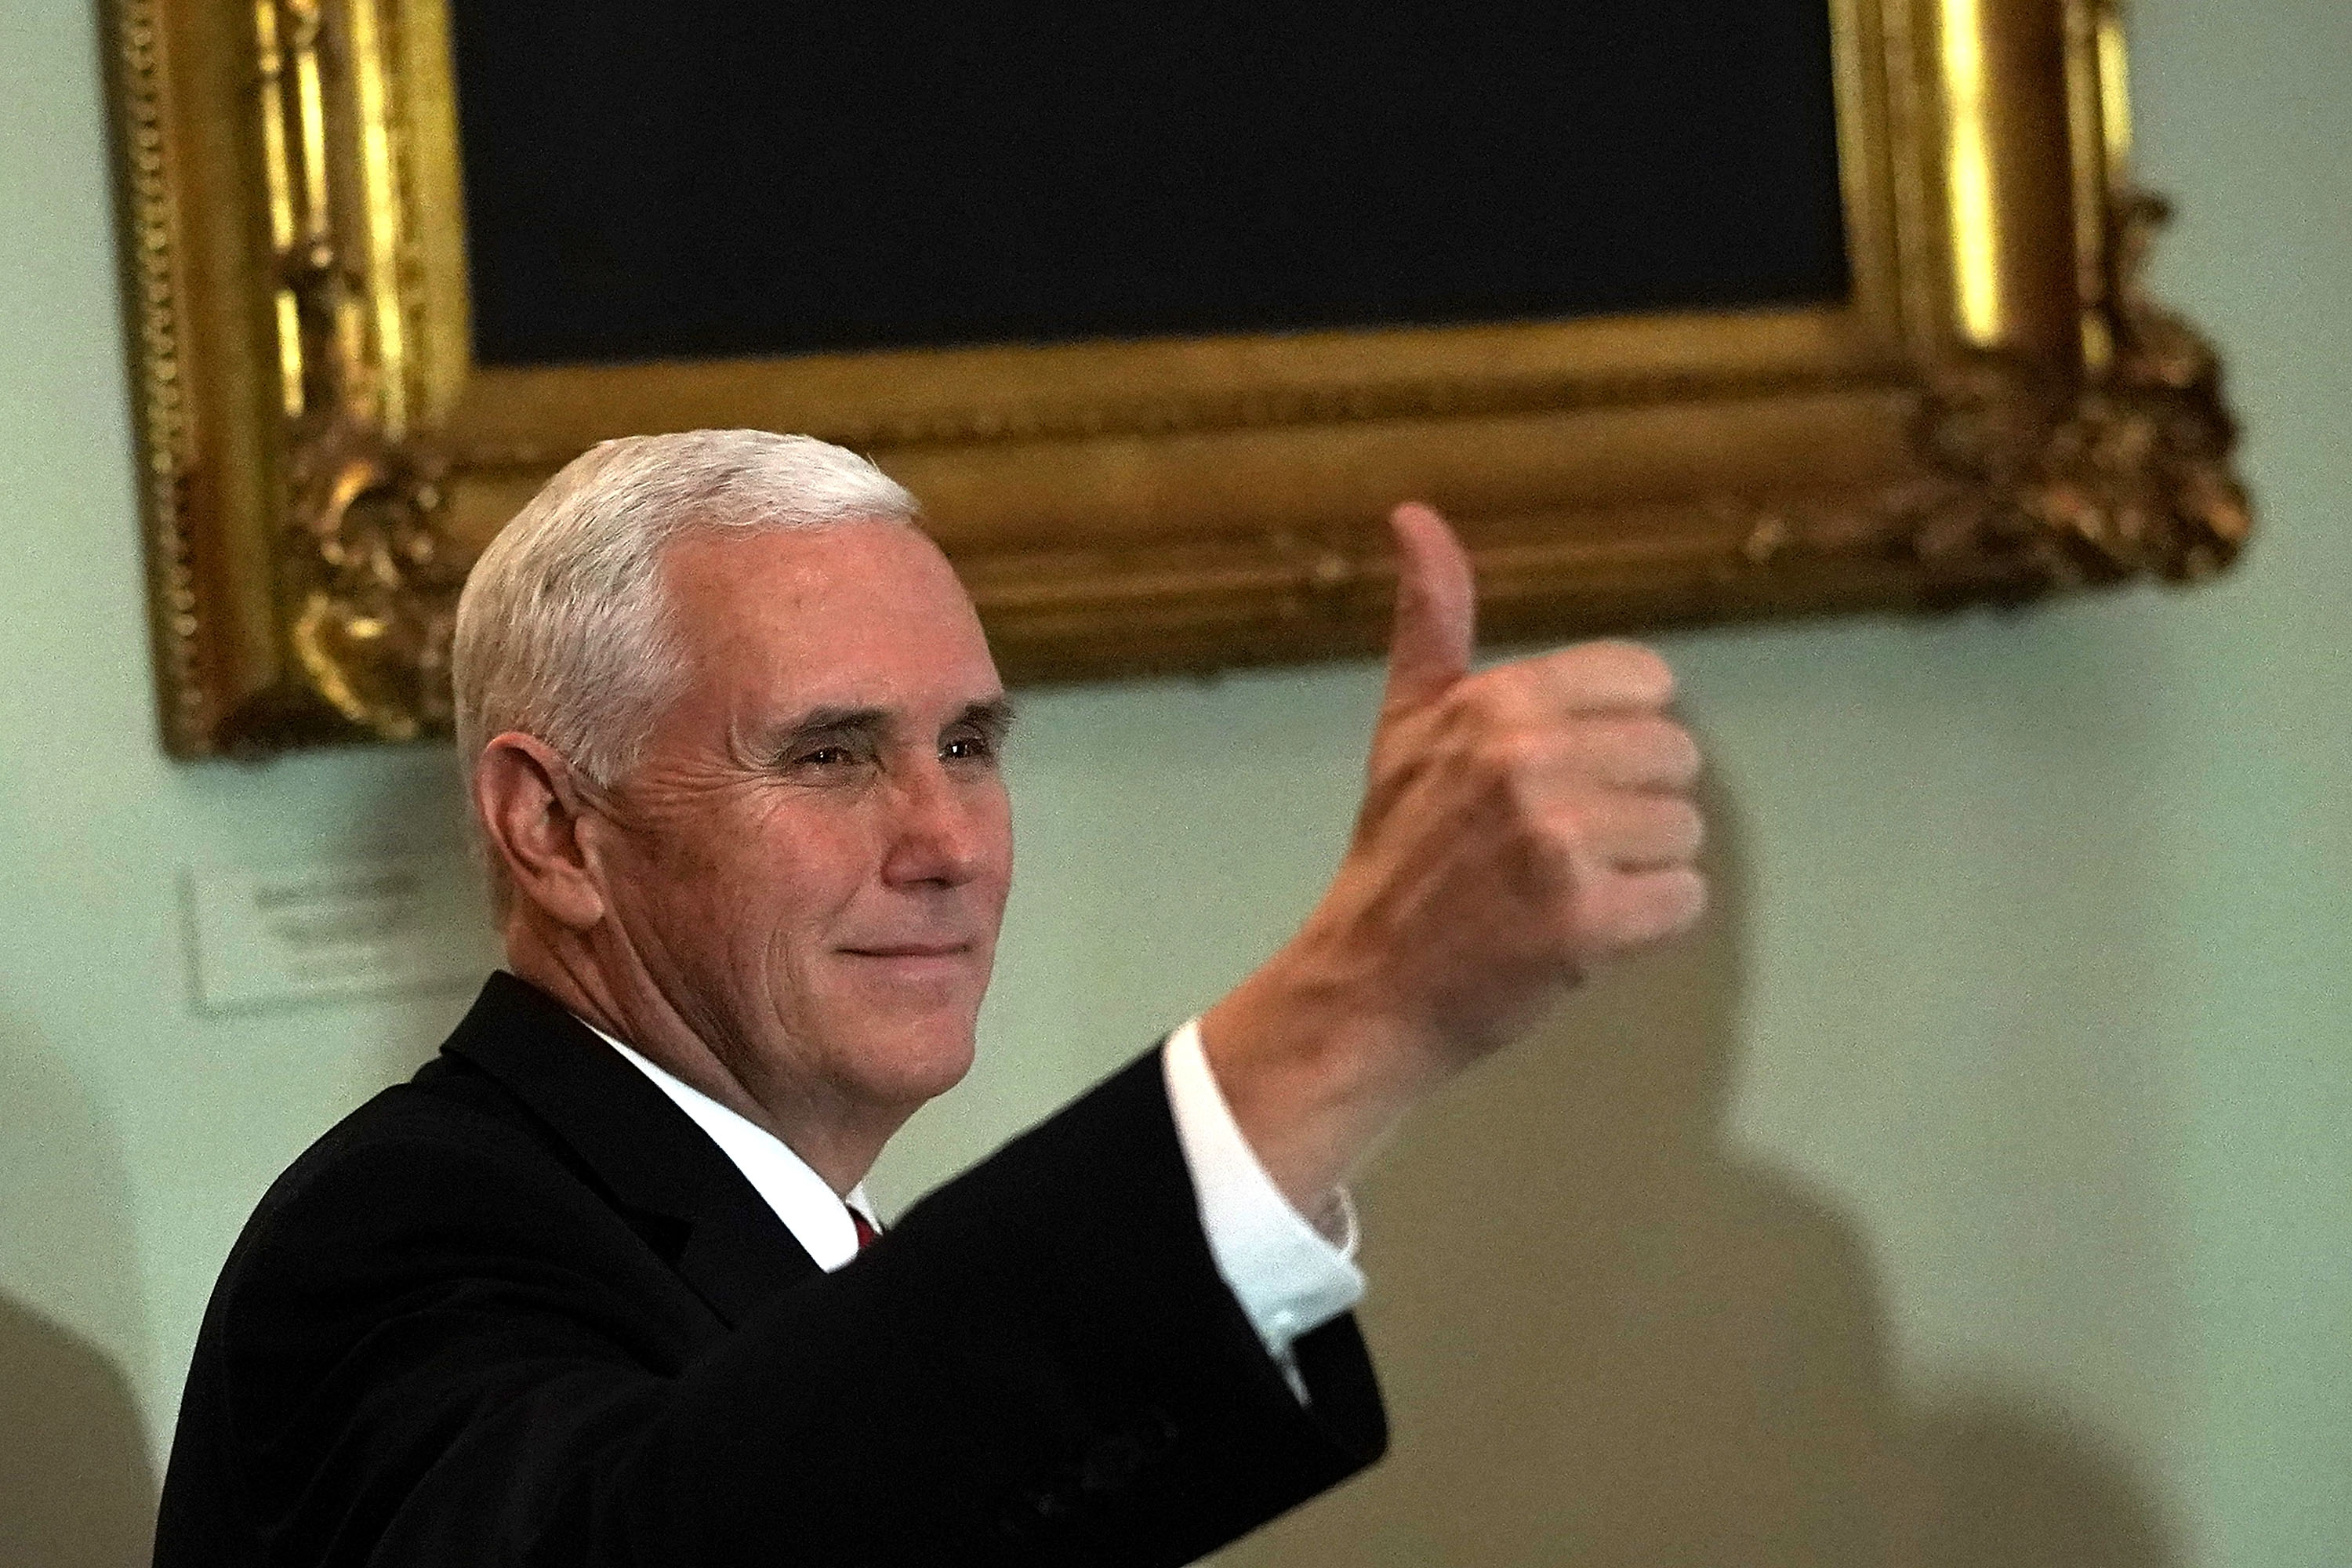 U.S. Vice President Mike Pence gives a thumbs up as he arrives for a Senate Republican policy luncheon at the Capitol December 19, 2017 in Washington, DC. The Senate is expected to vote on the tax bill once the House passed it.